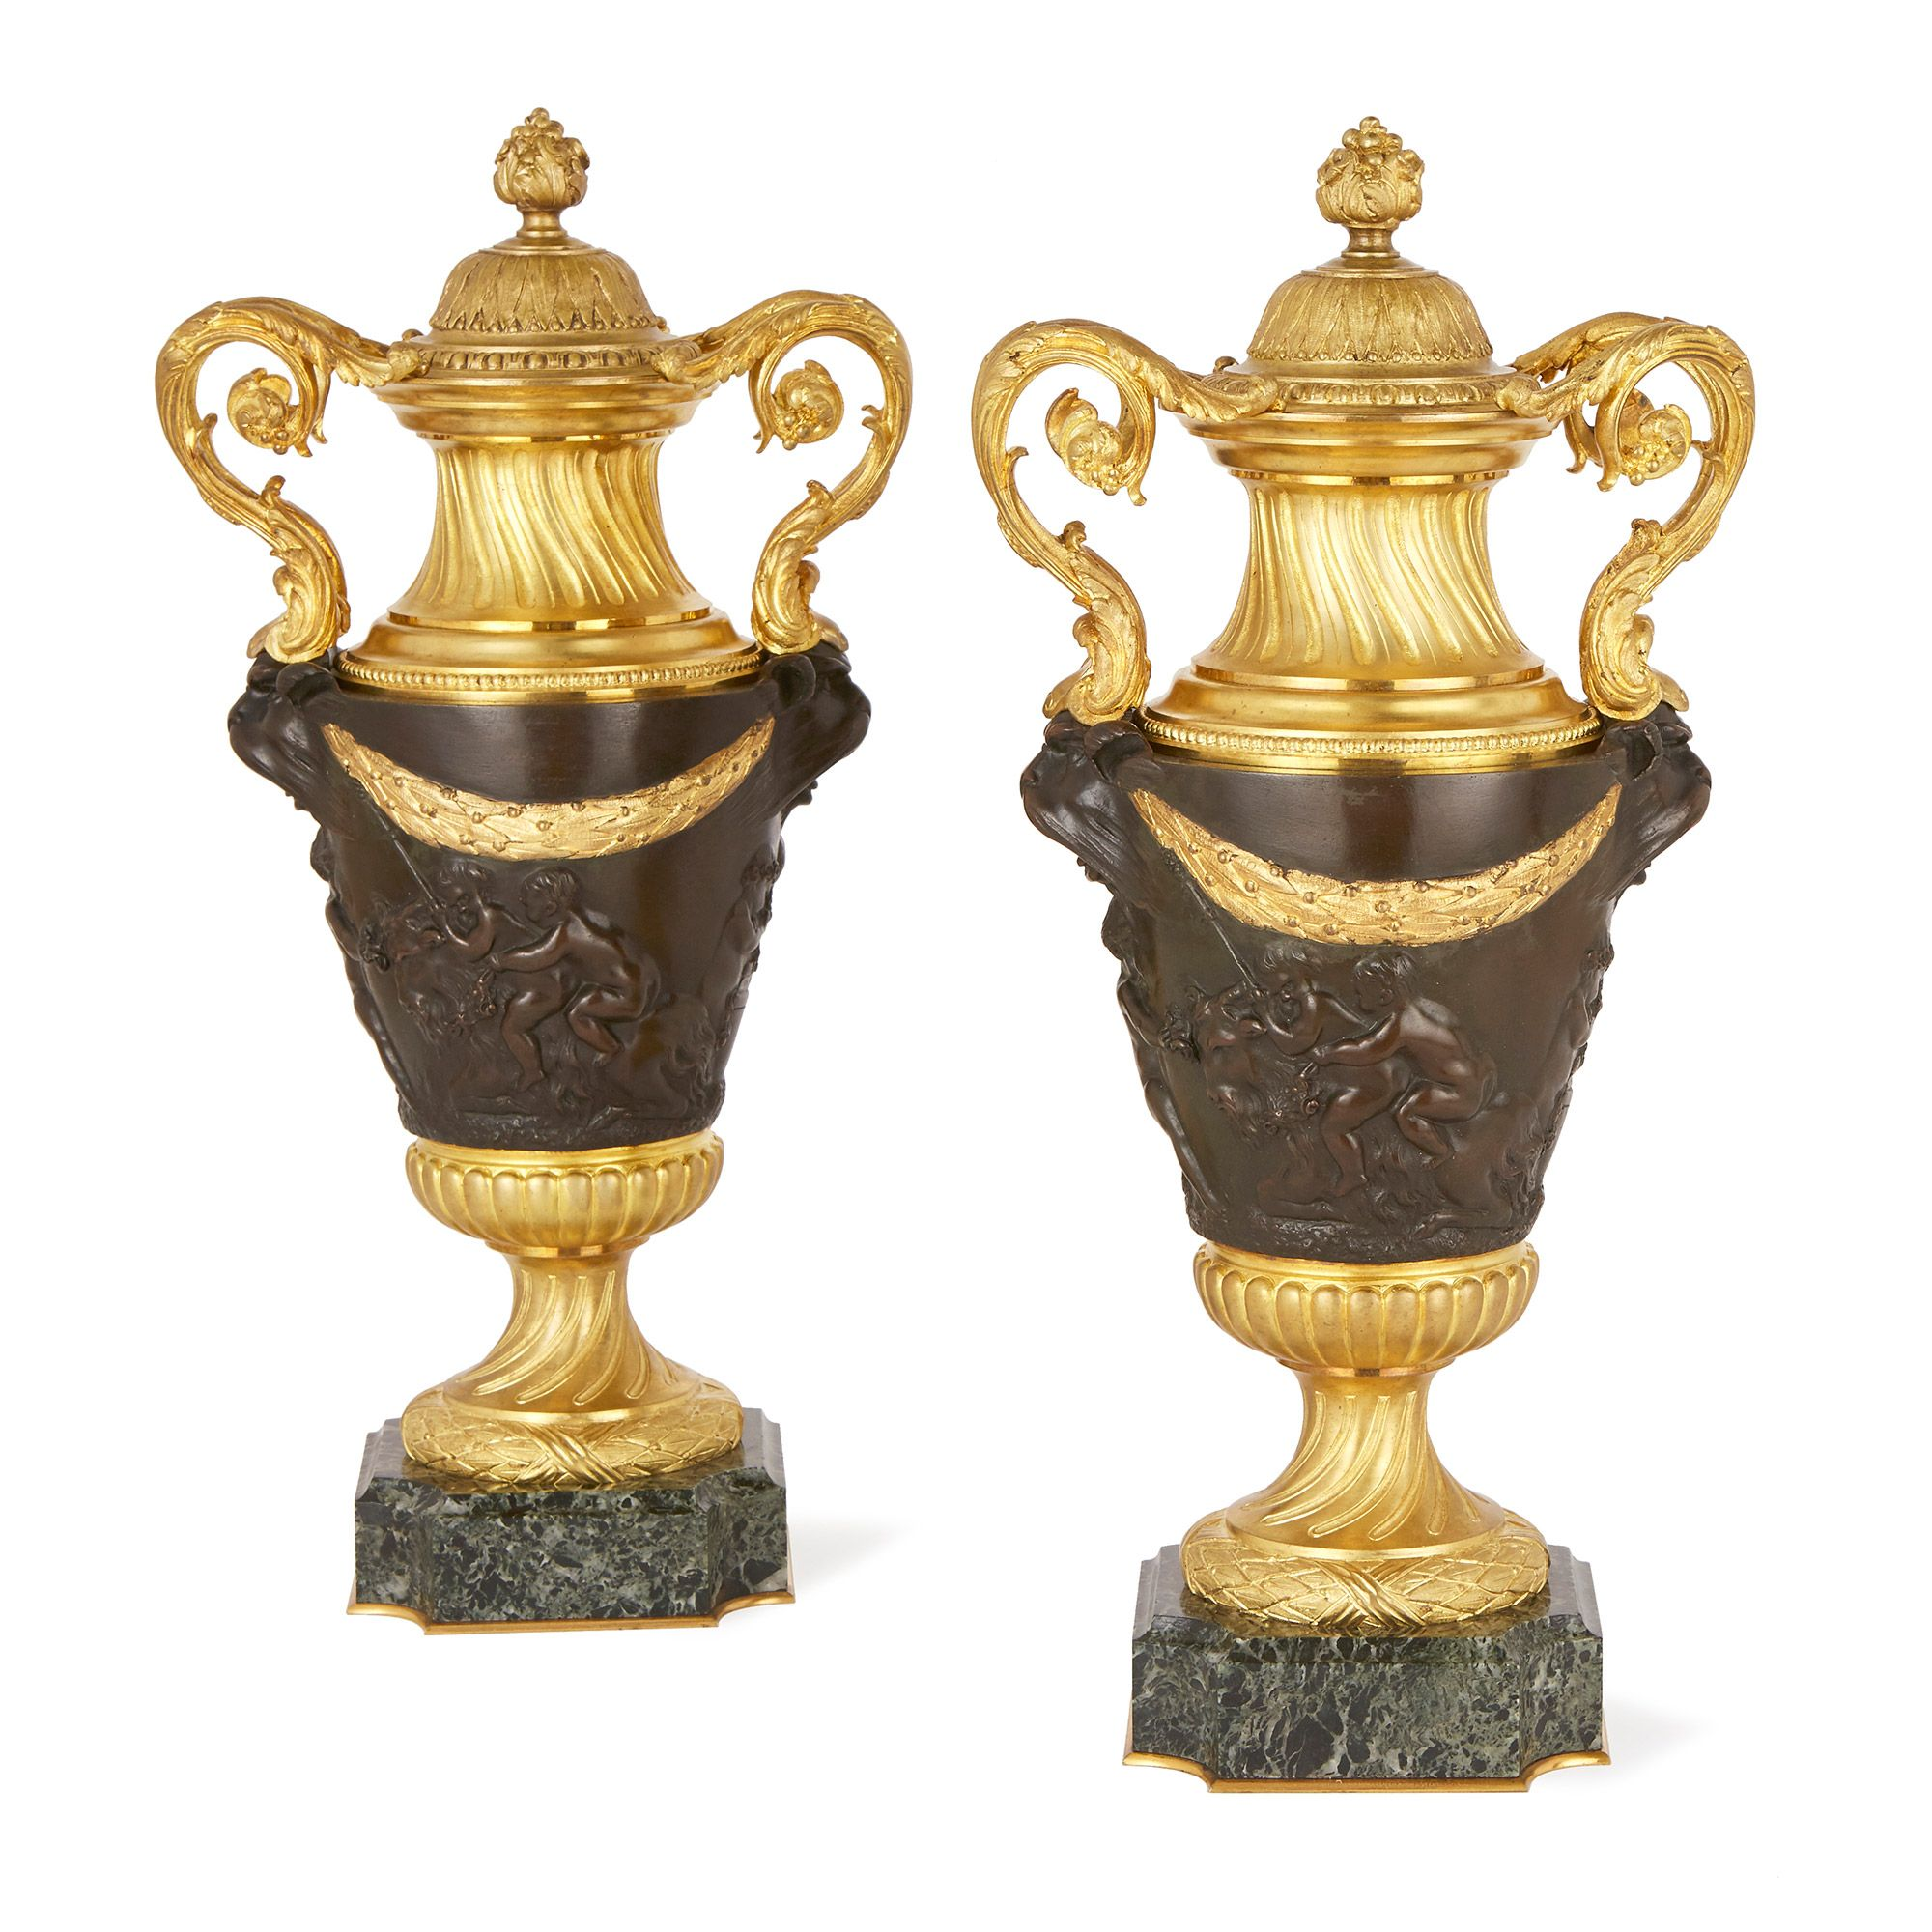 Mayfairgallerypair of french marble gilt and patinated bronze free international shipping these fine antique french vases are notable for their neoclassical depictions of bacchic revelry a theme that embodies reviewsmspy